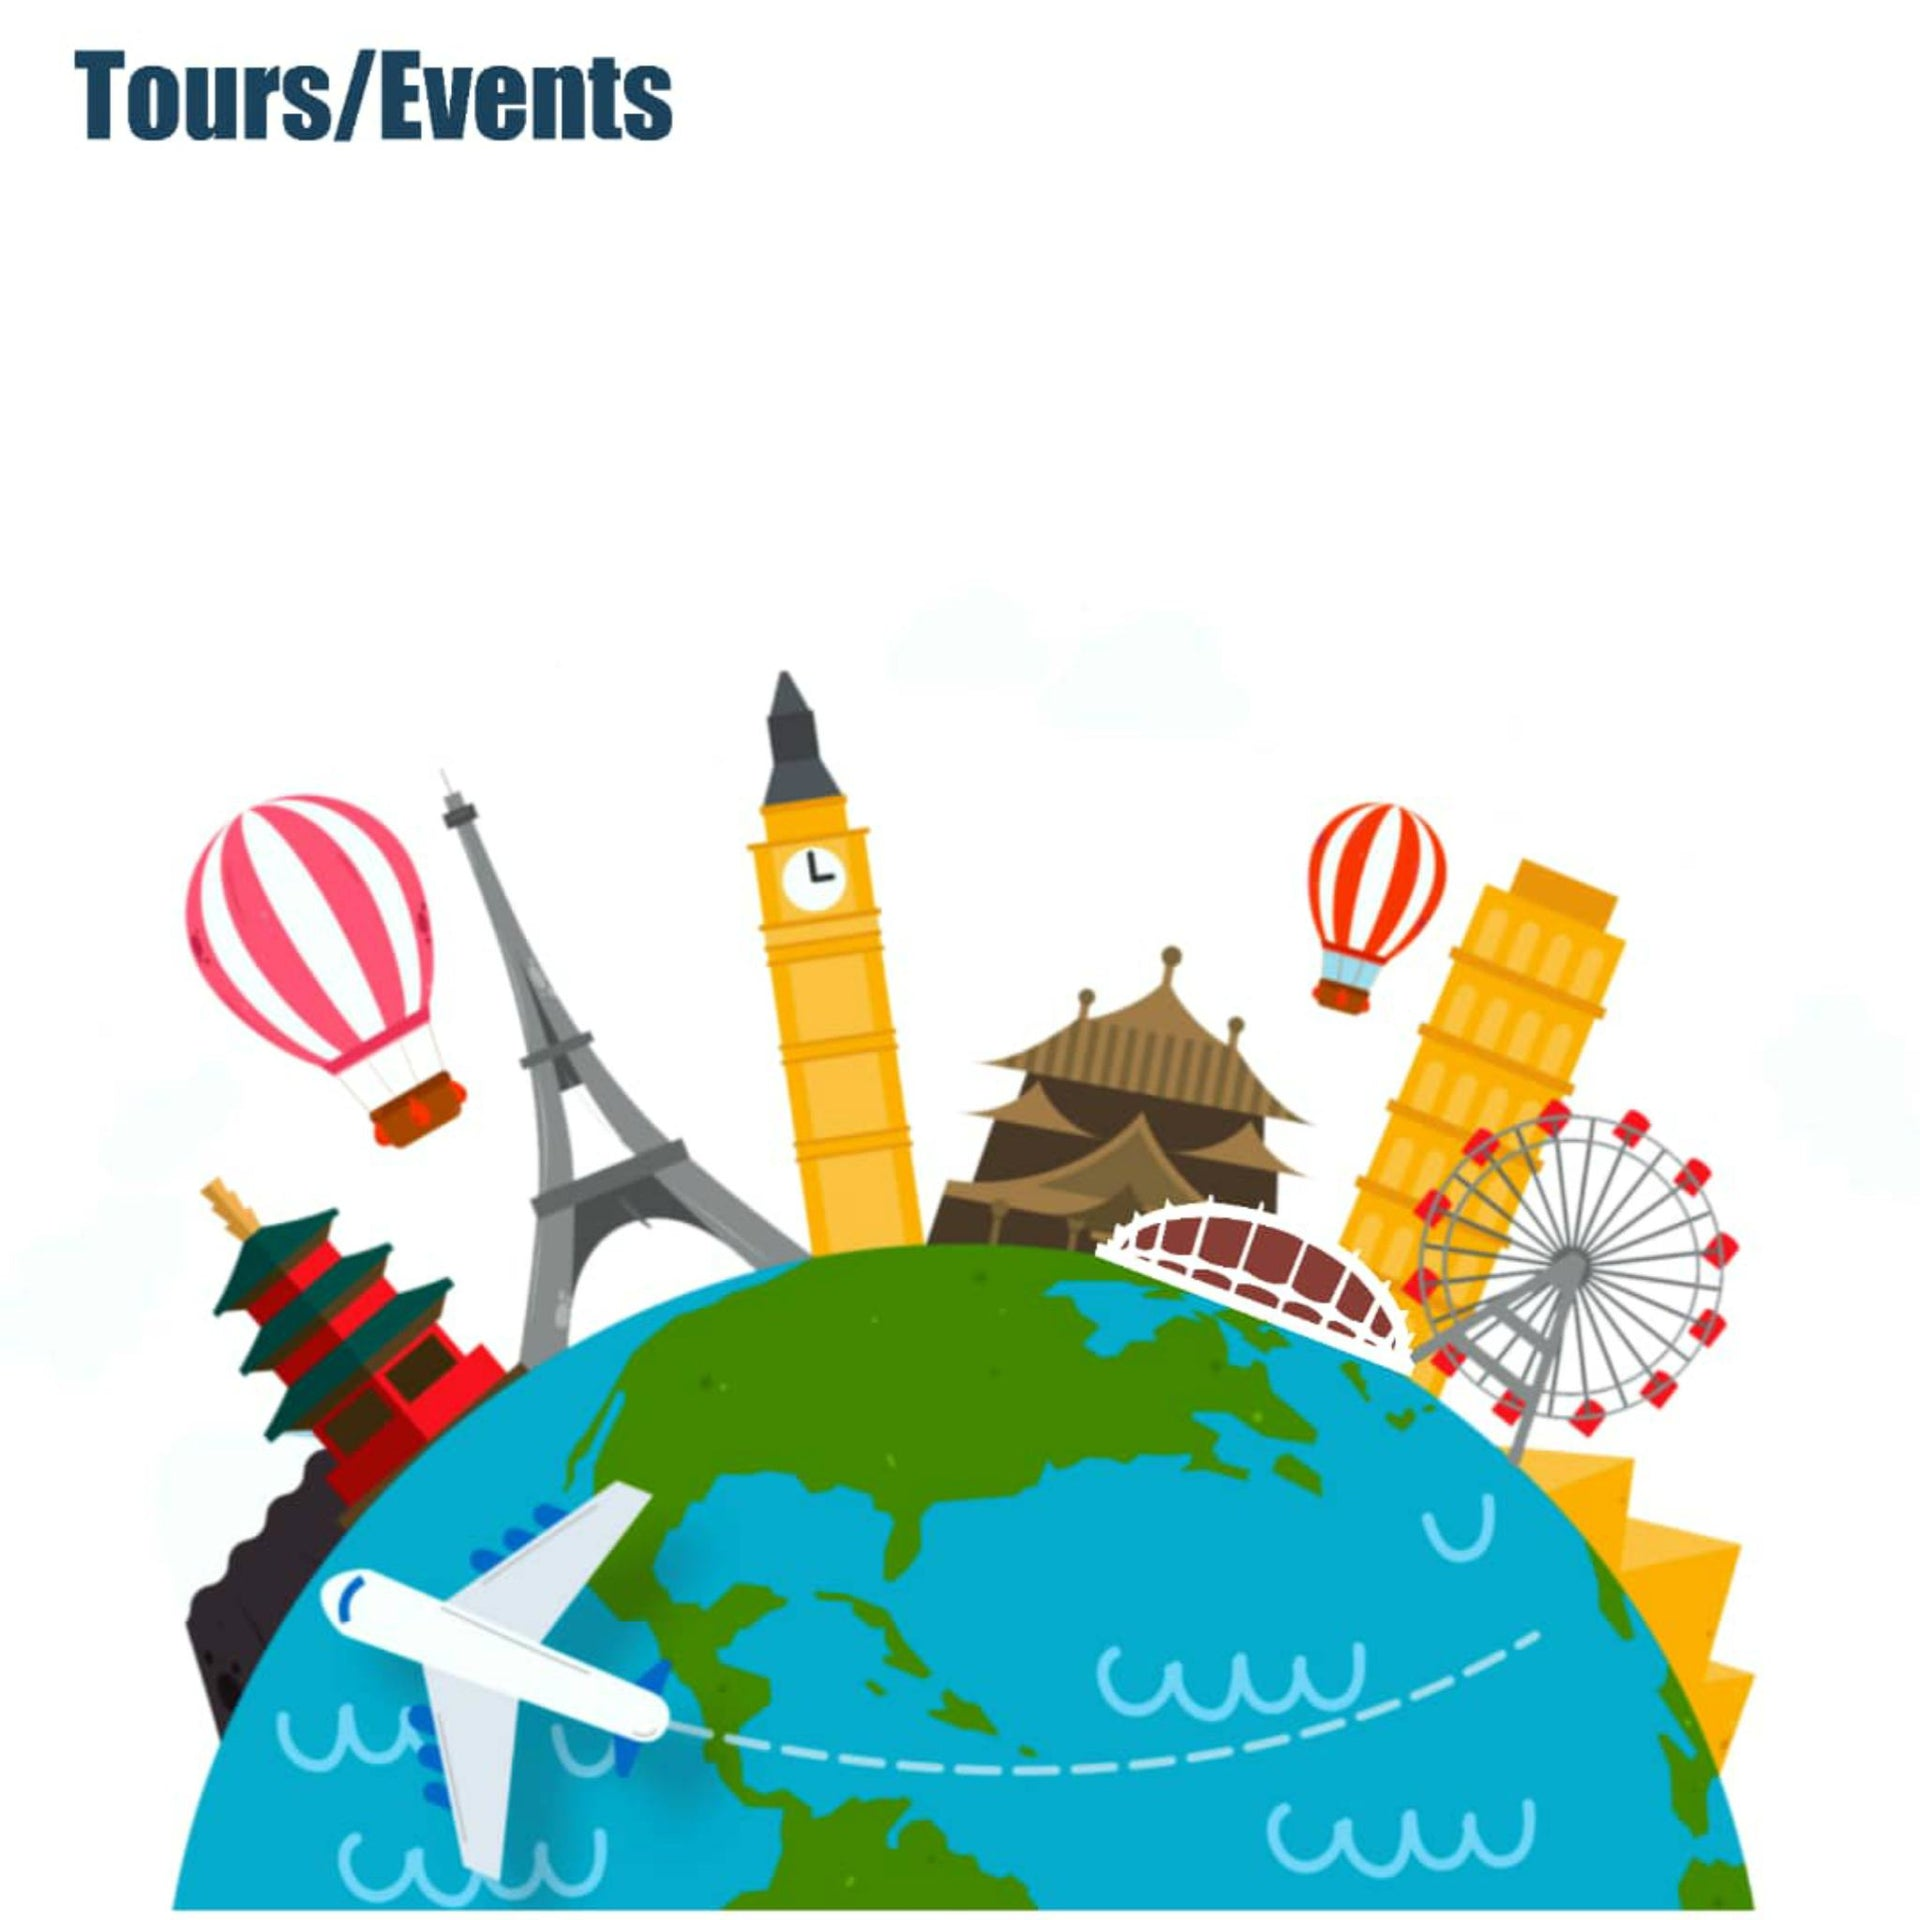 Tours/Events